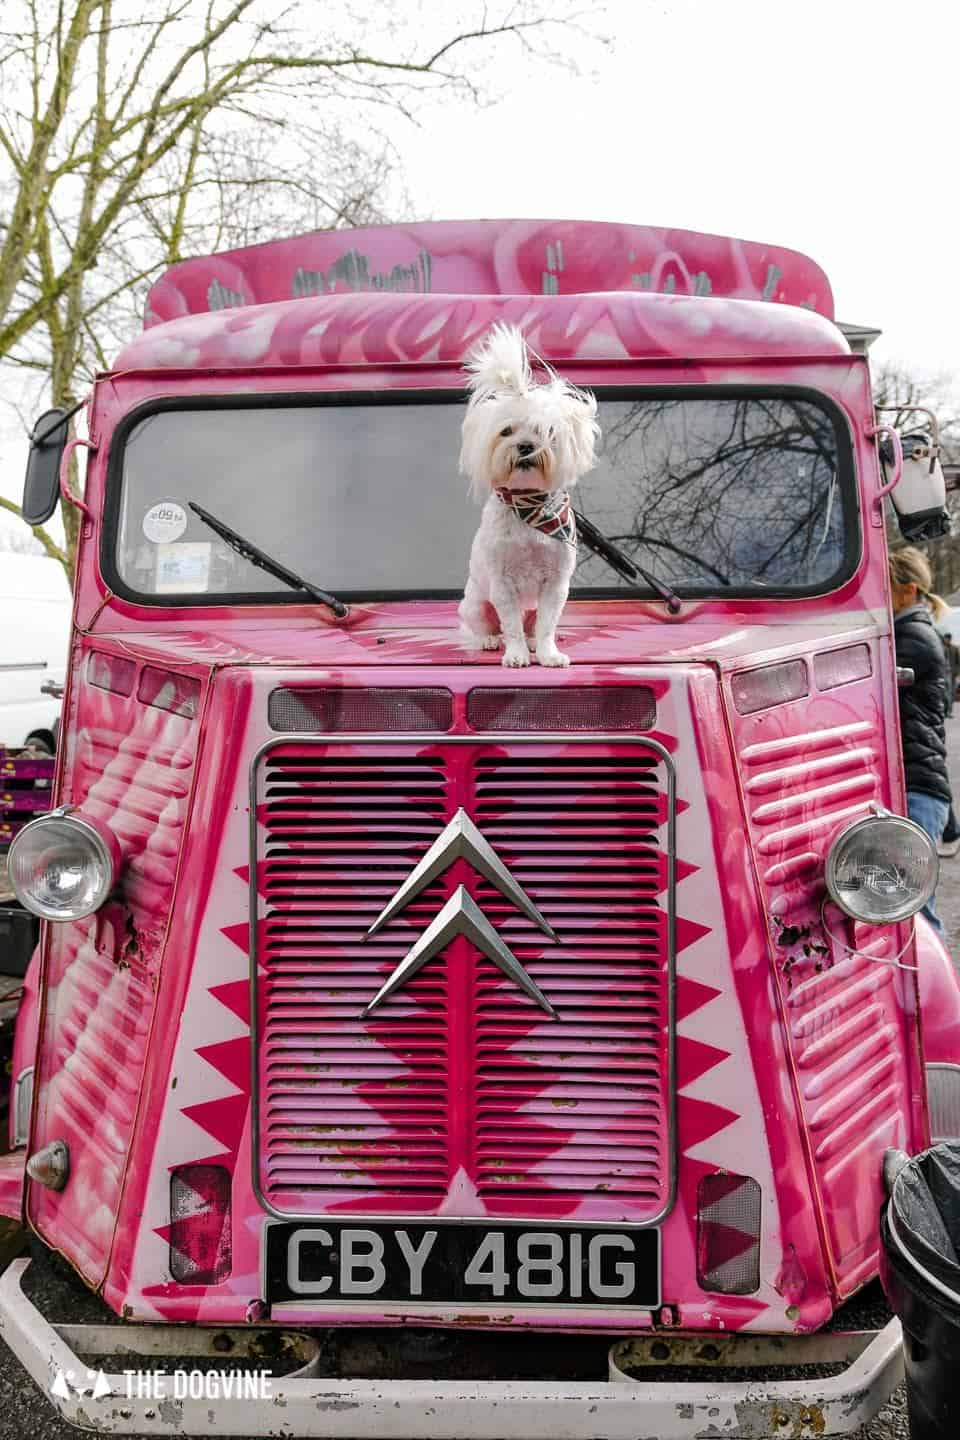 The Best of Dog-friendly St Johns by Milo the Maltese - Brockley Market food Truck